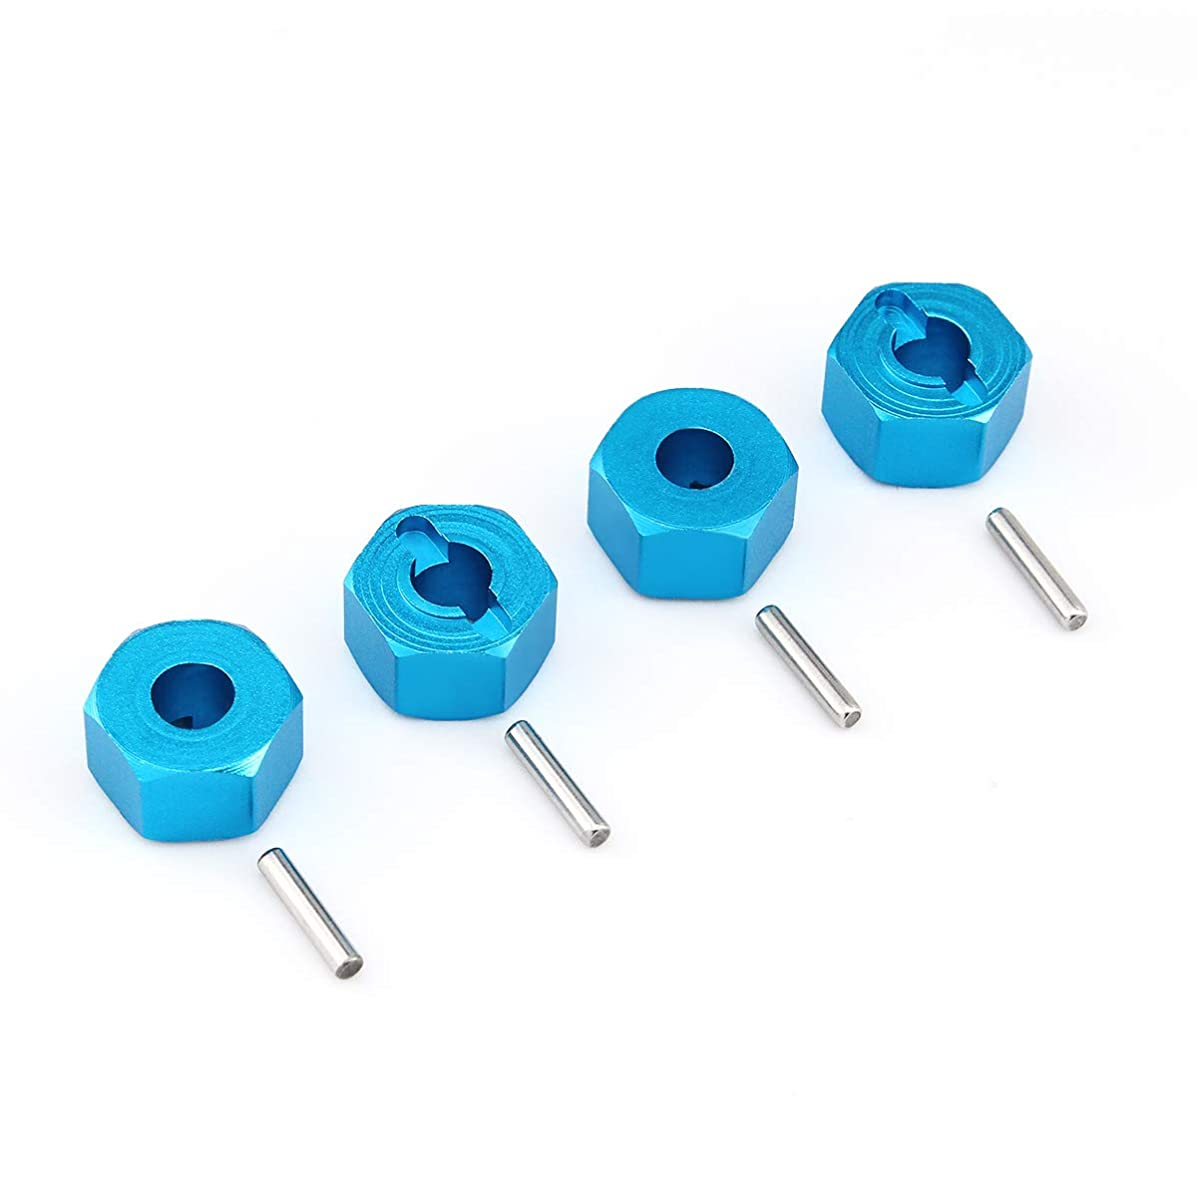 GDOOL Hex Wheel Hub Mount 12mm, Aluminum 7mm Thick with 2x10mm Stub Axle Pins for Traxxas 1/10 Slash 4x4 & HQ 727 RC Cars Replacement Upgrade Parts (4PCS Blue)